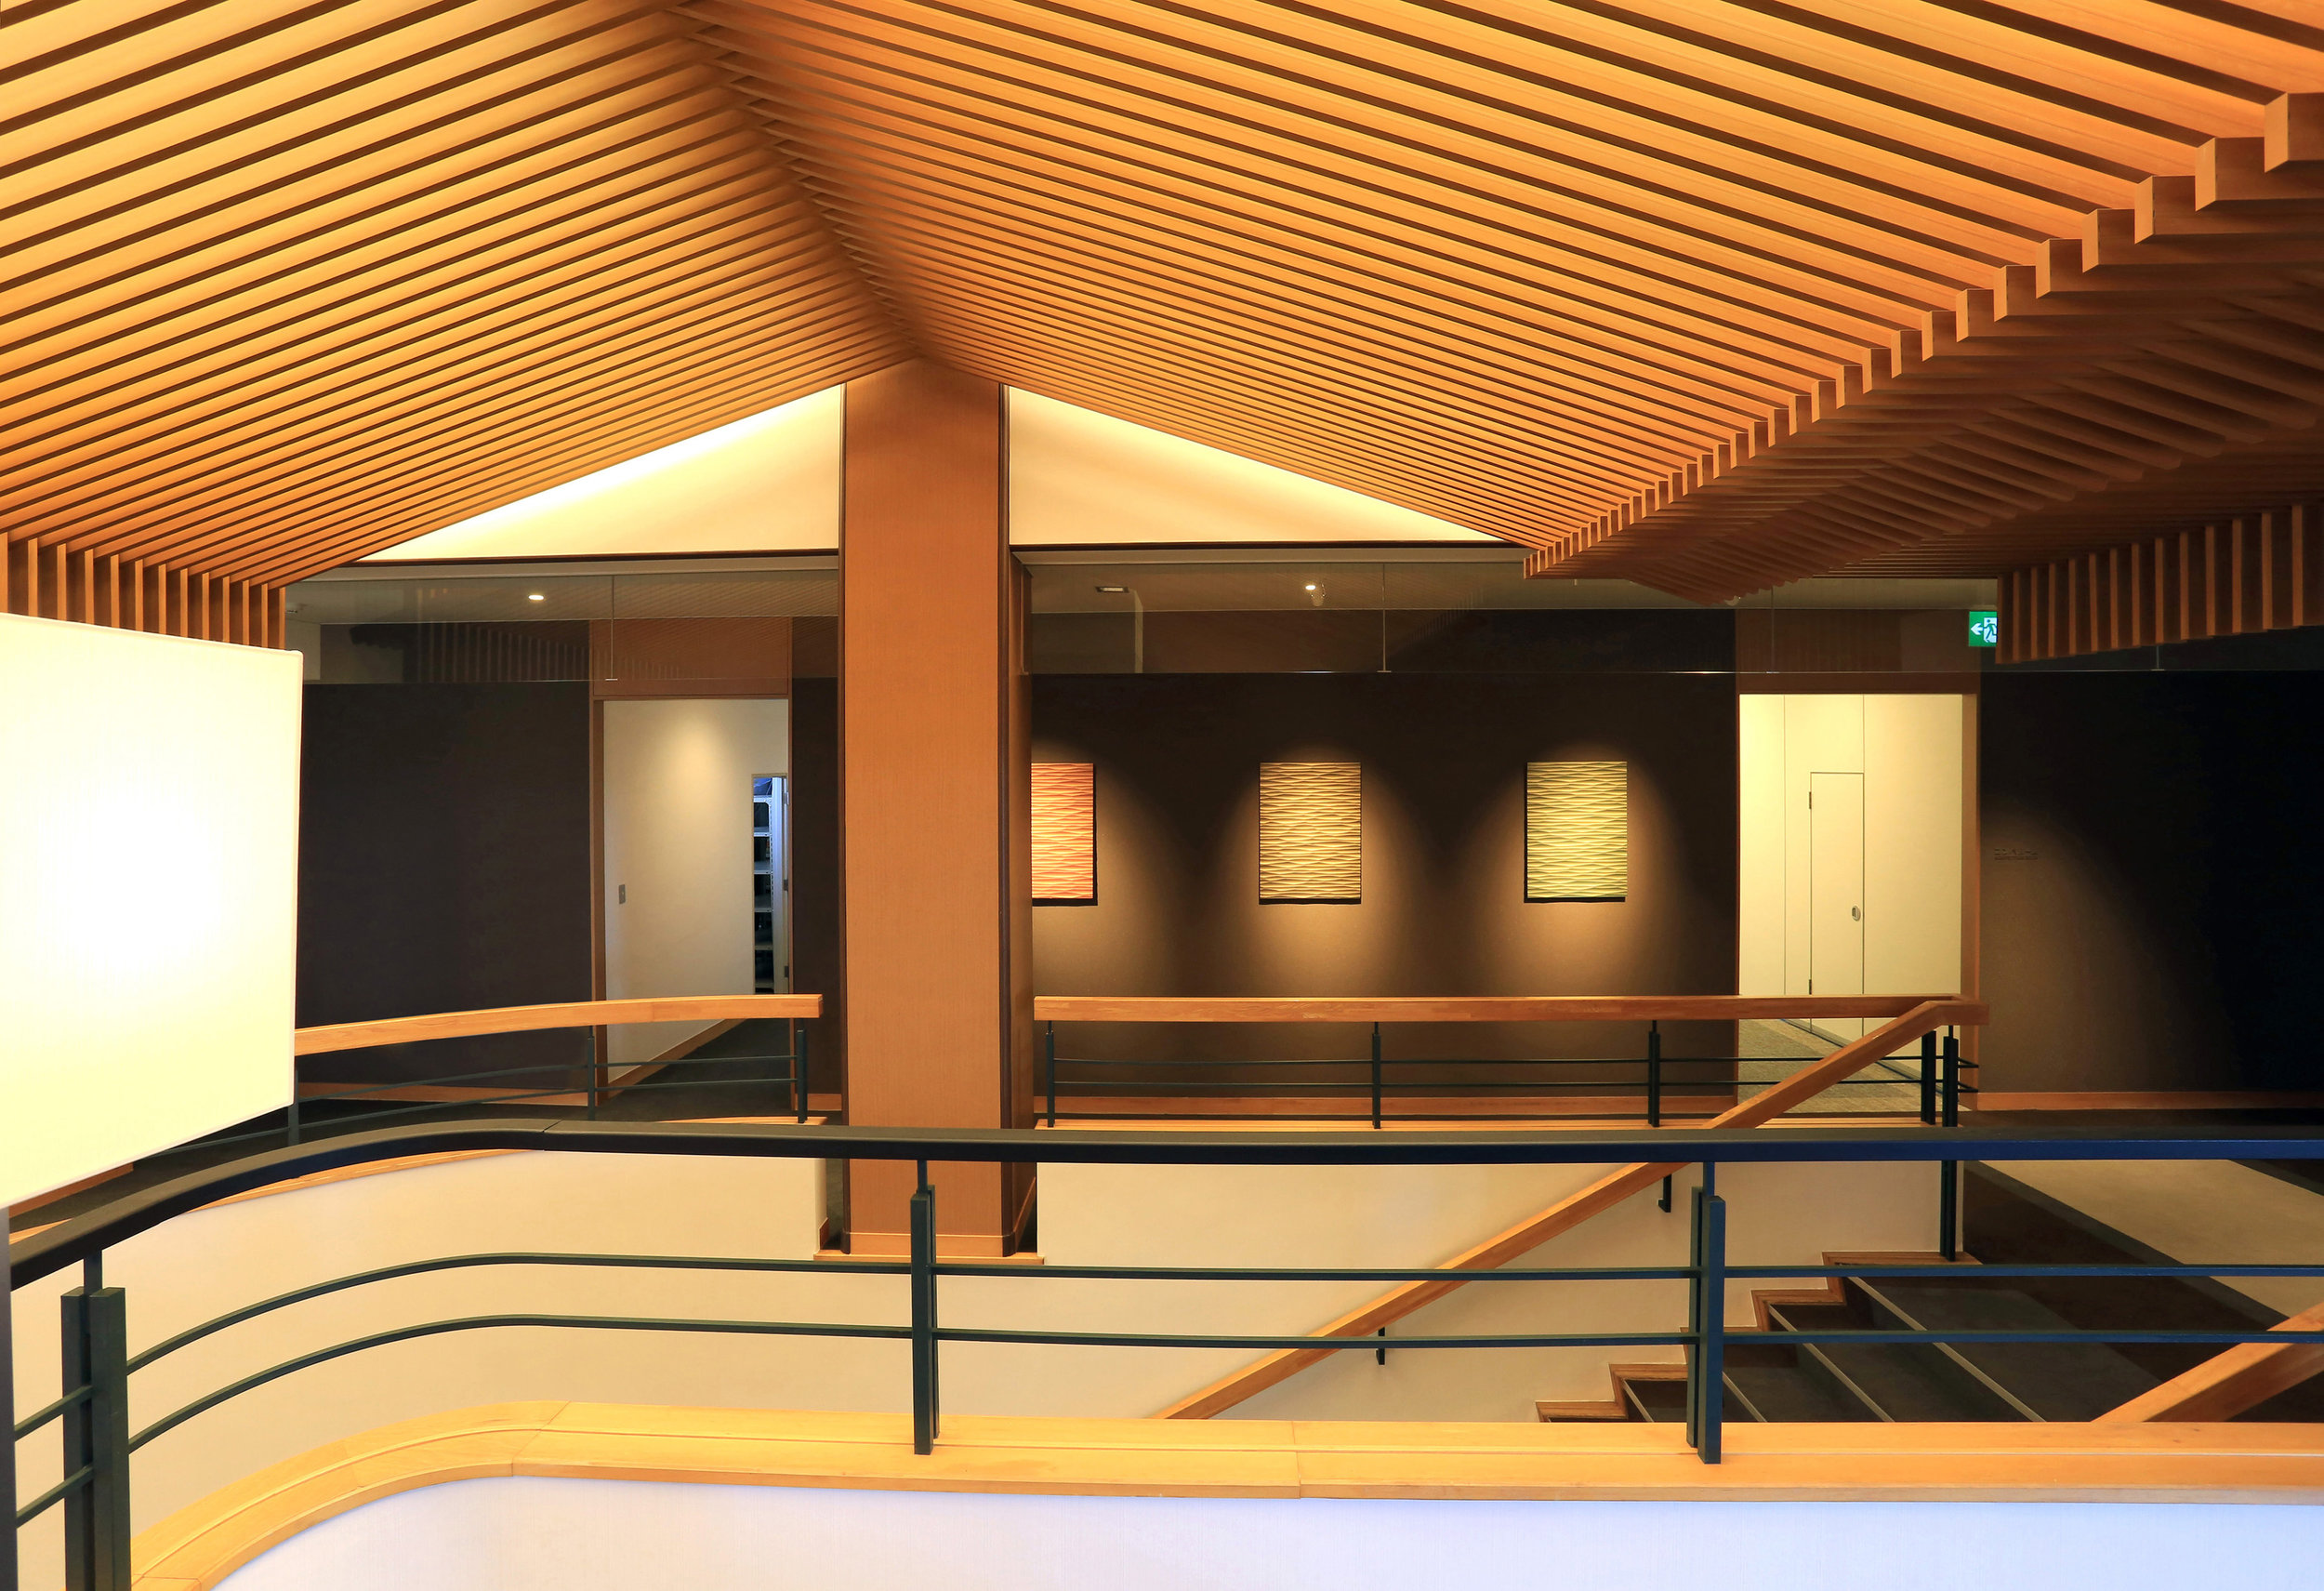 Commercial Office Ceiling - Japan Ever Art Wood® battens - Koshi 30x85mm standard hollow section in Pain